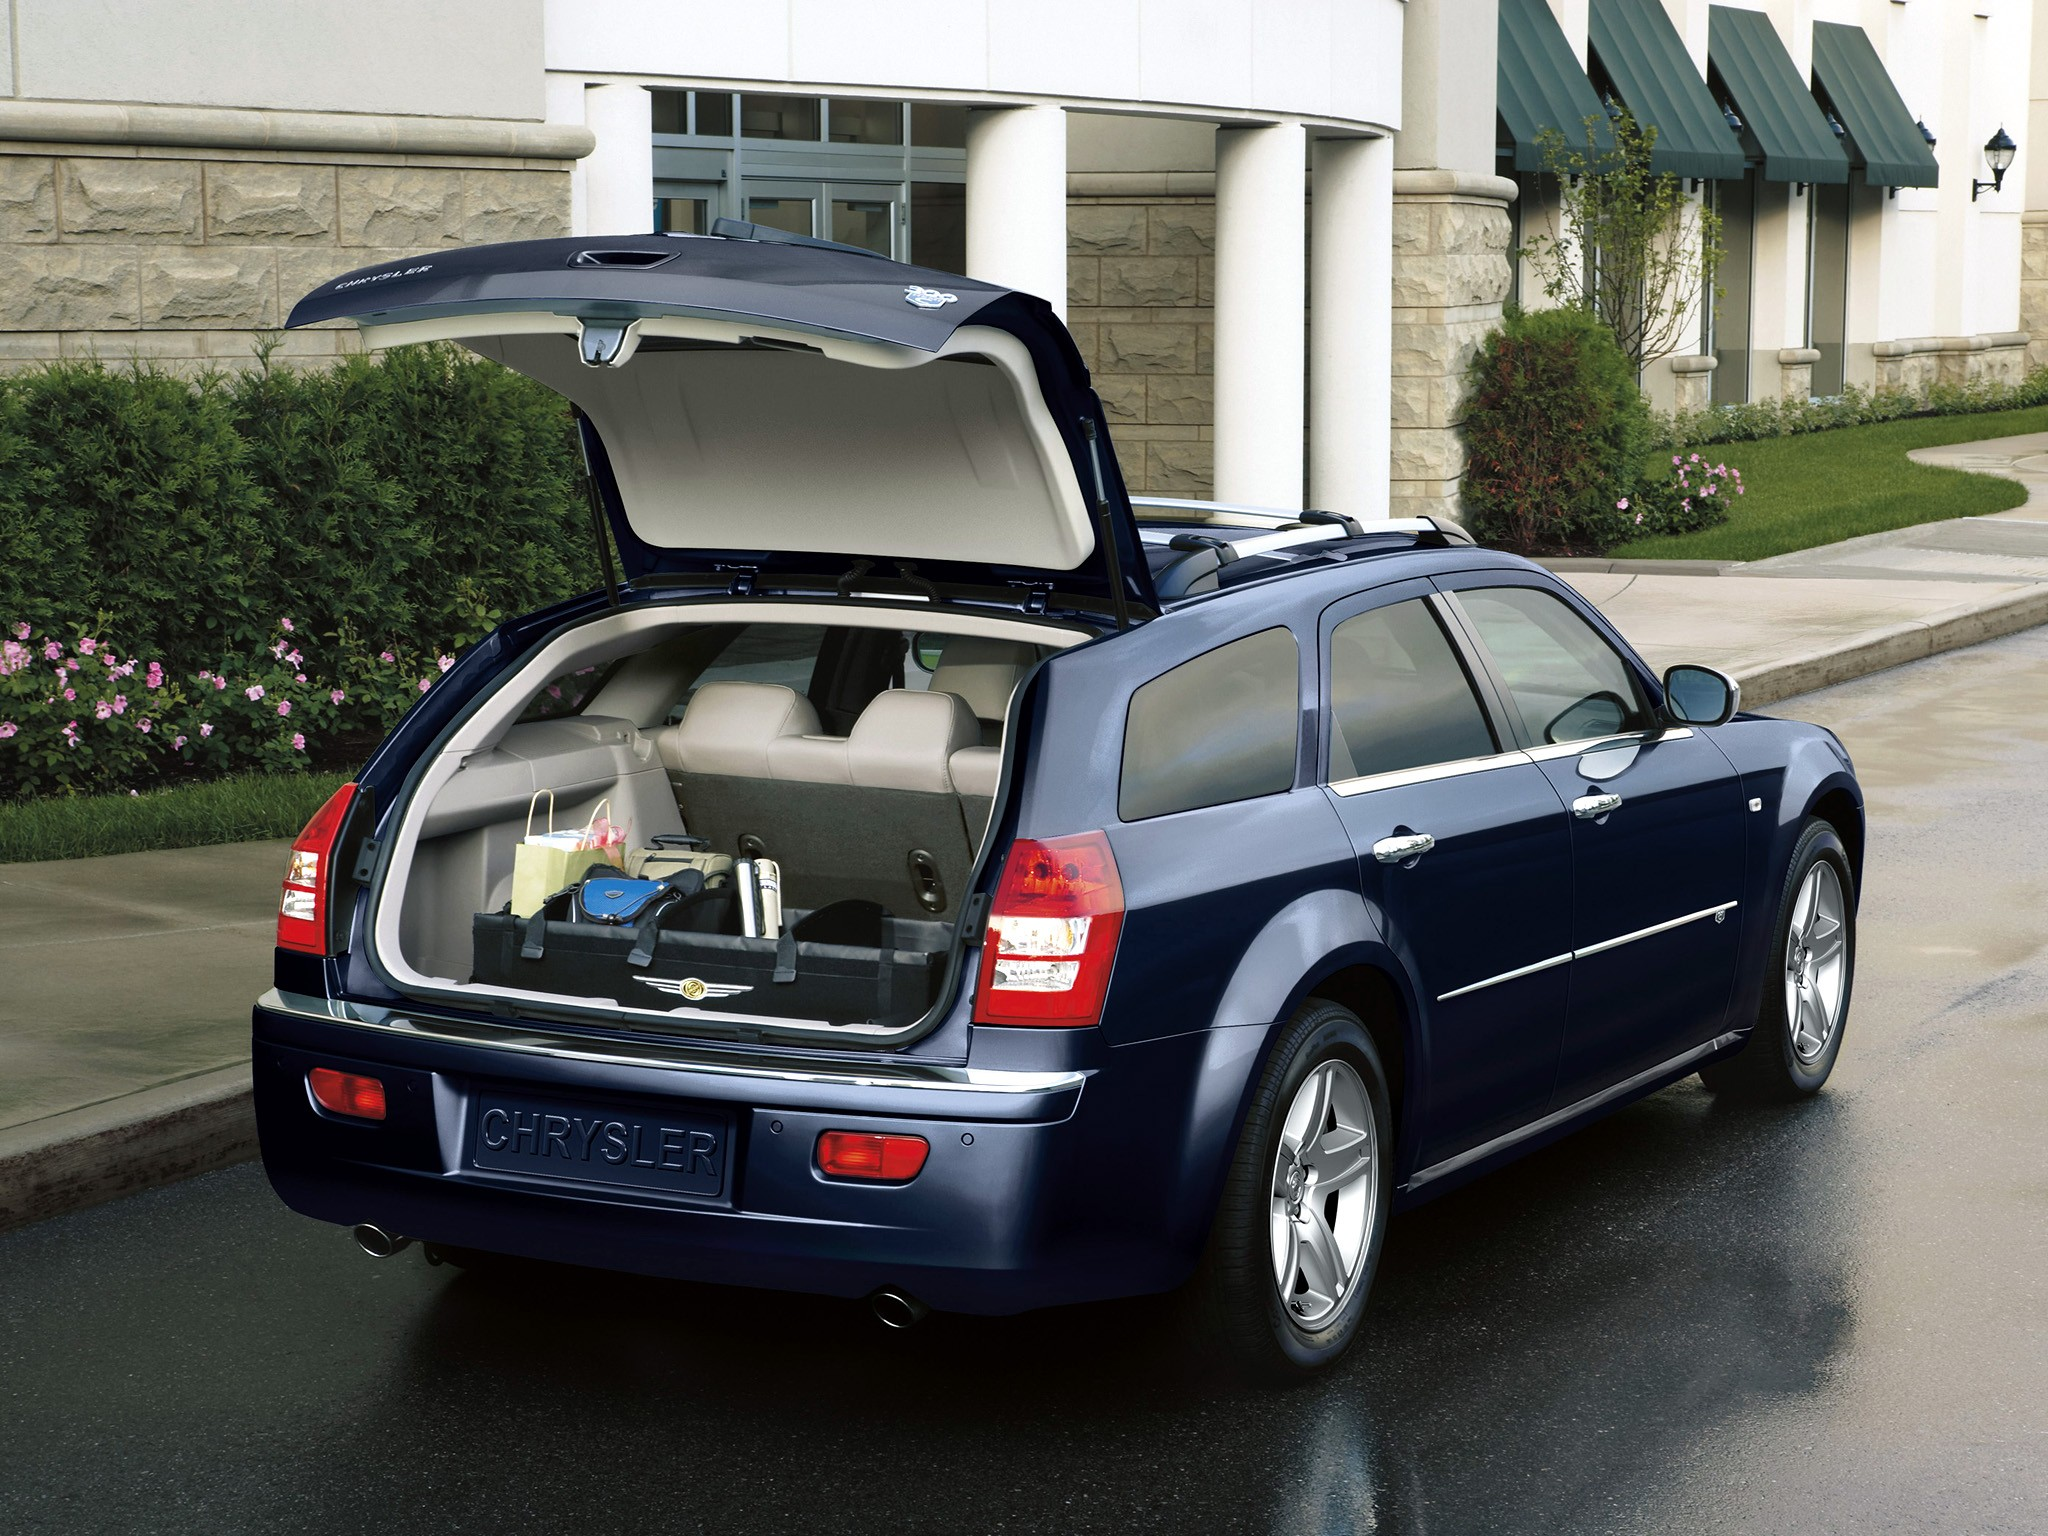 CHRYSLER 300C Touring specs - 2004, 2005, 2006, 2007, 2008 ...